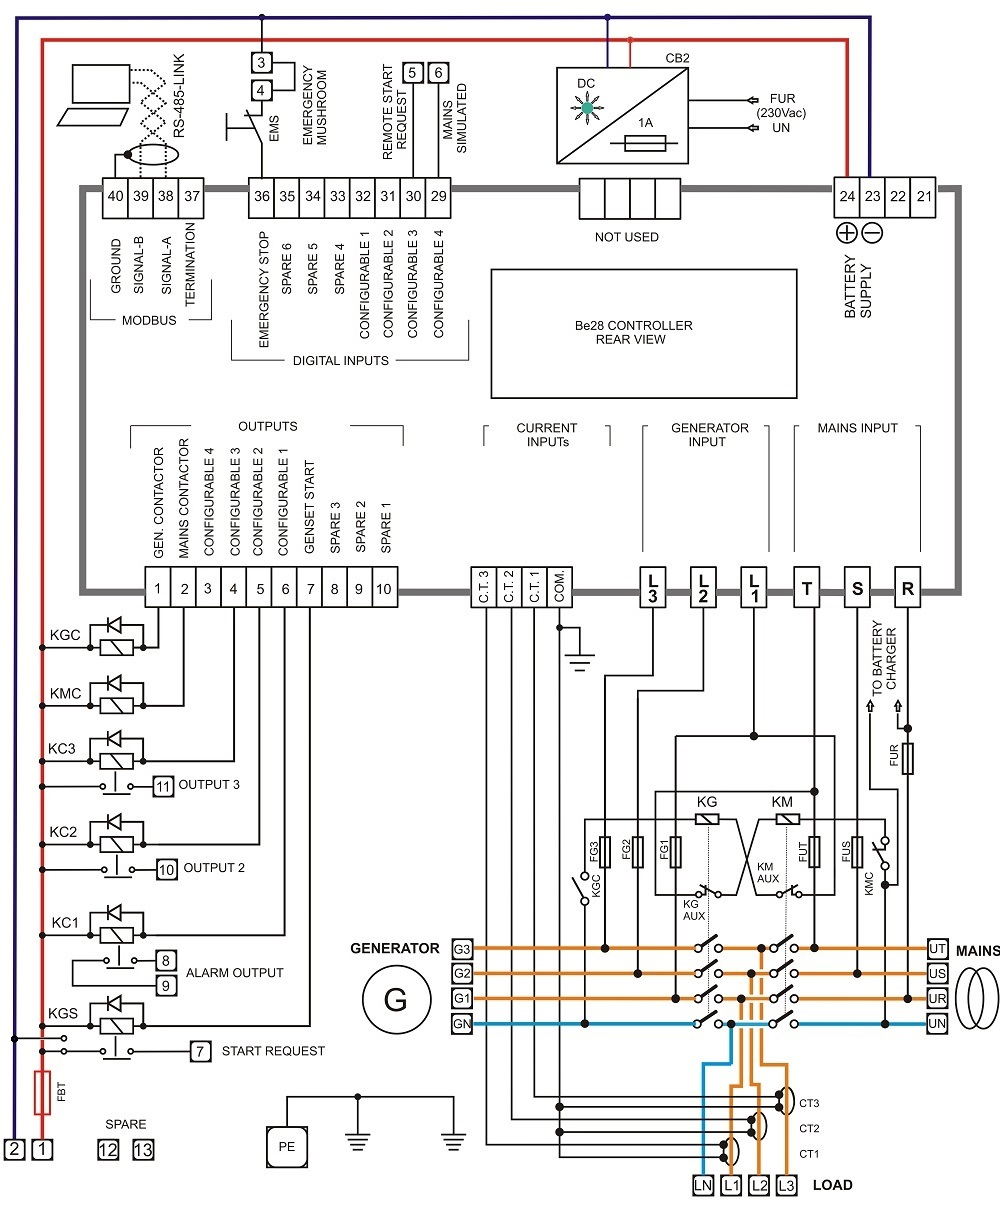 Fuse Box For Citroen Berlingo Wiring Diagram Libraries Nemo Van Location Library60kva Ats Panel